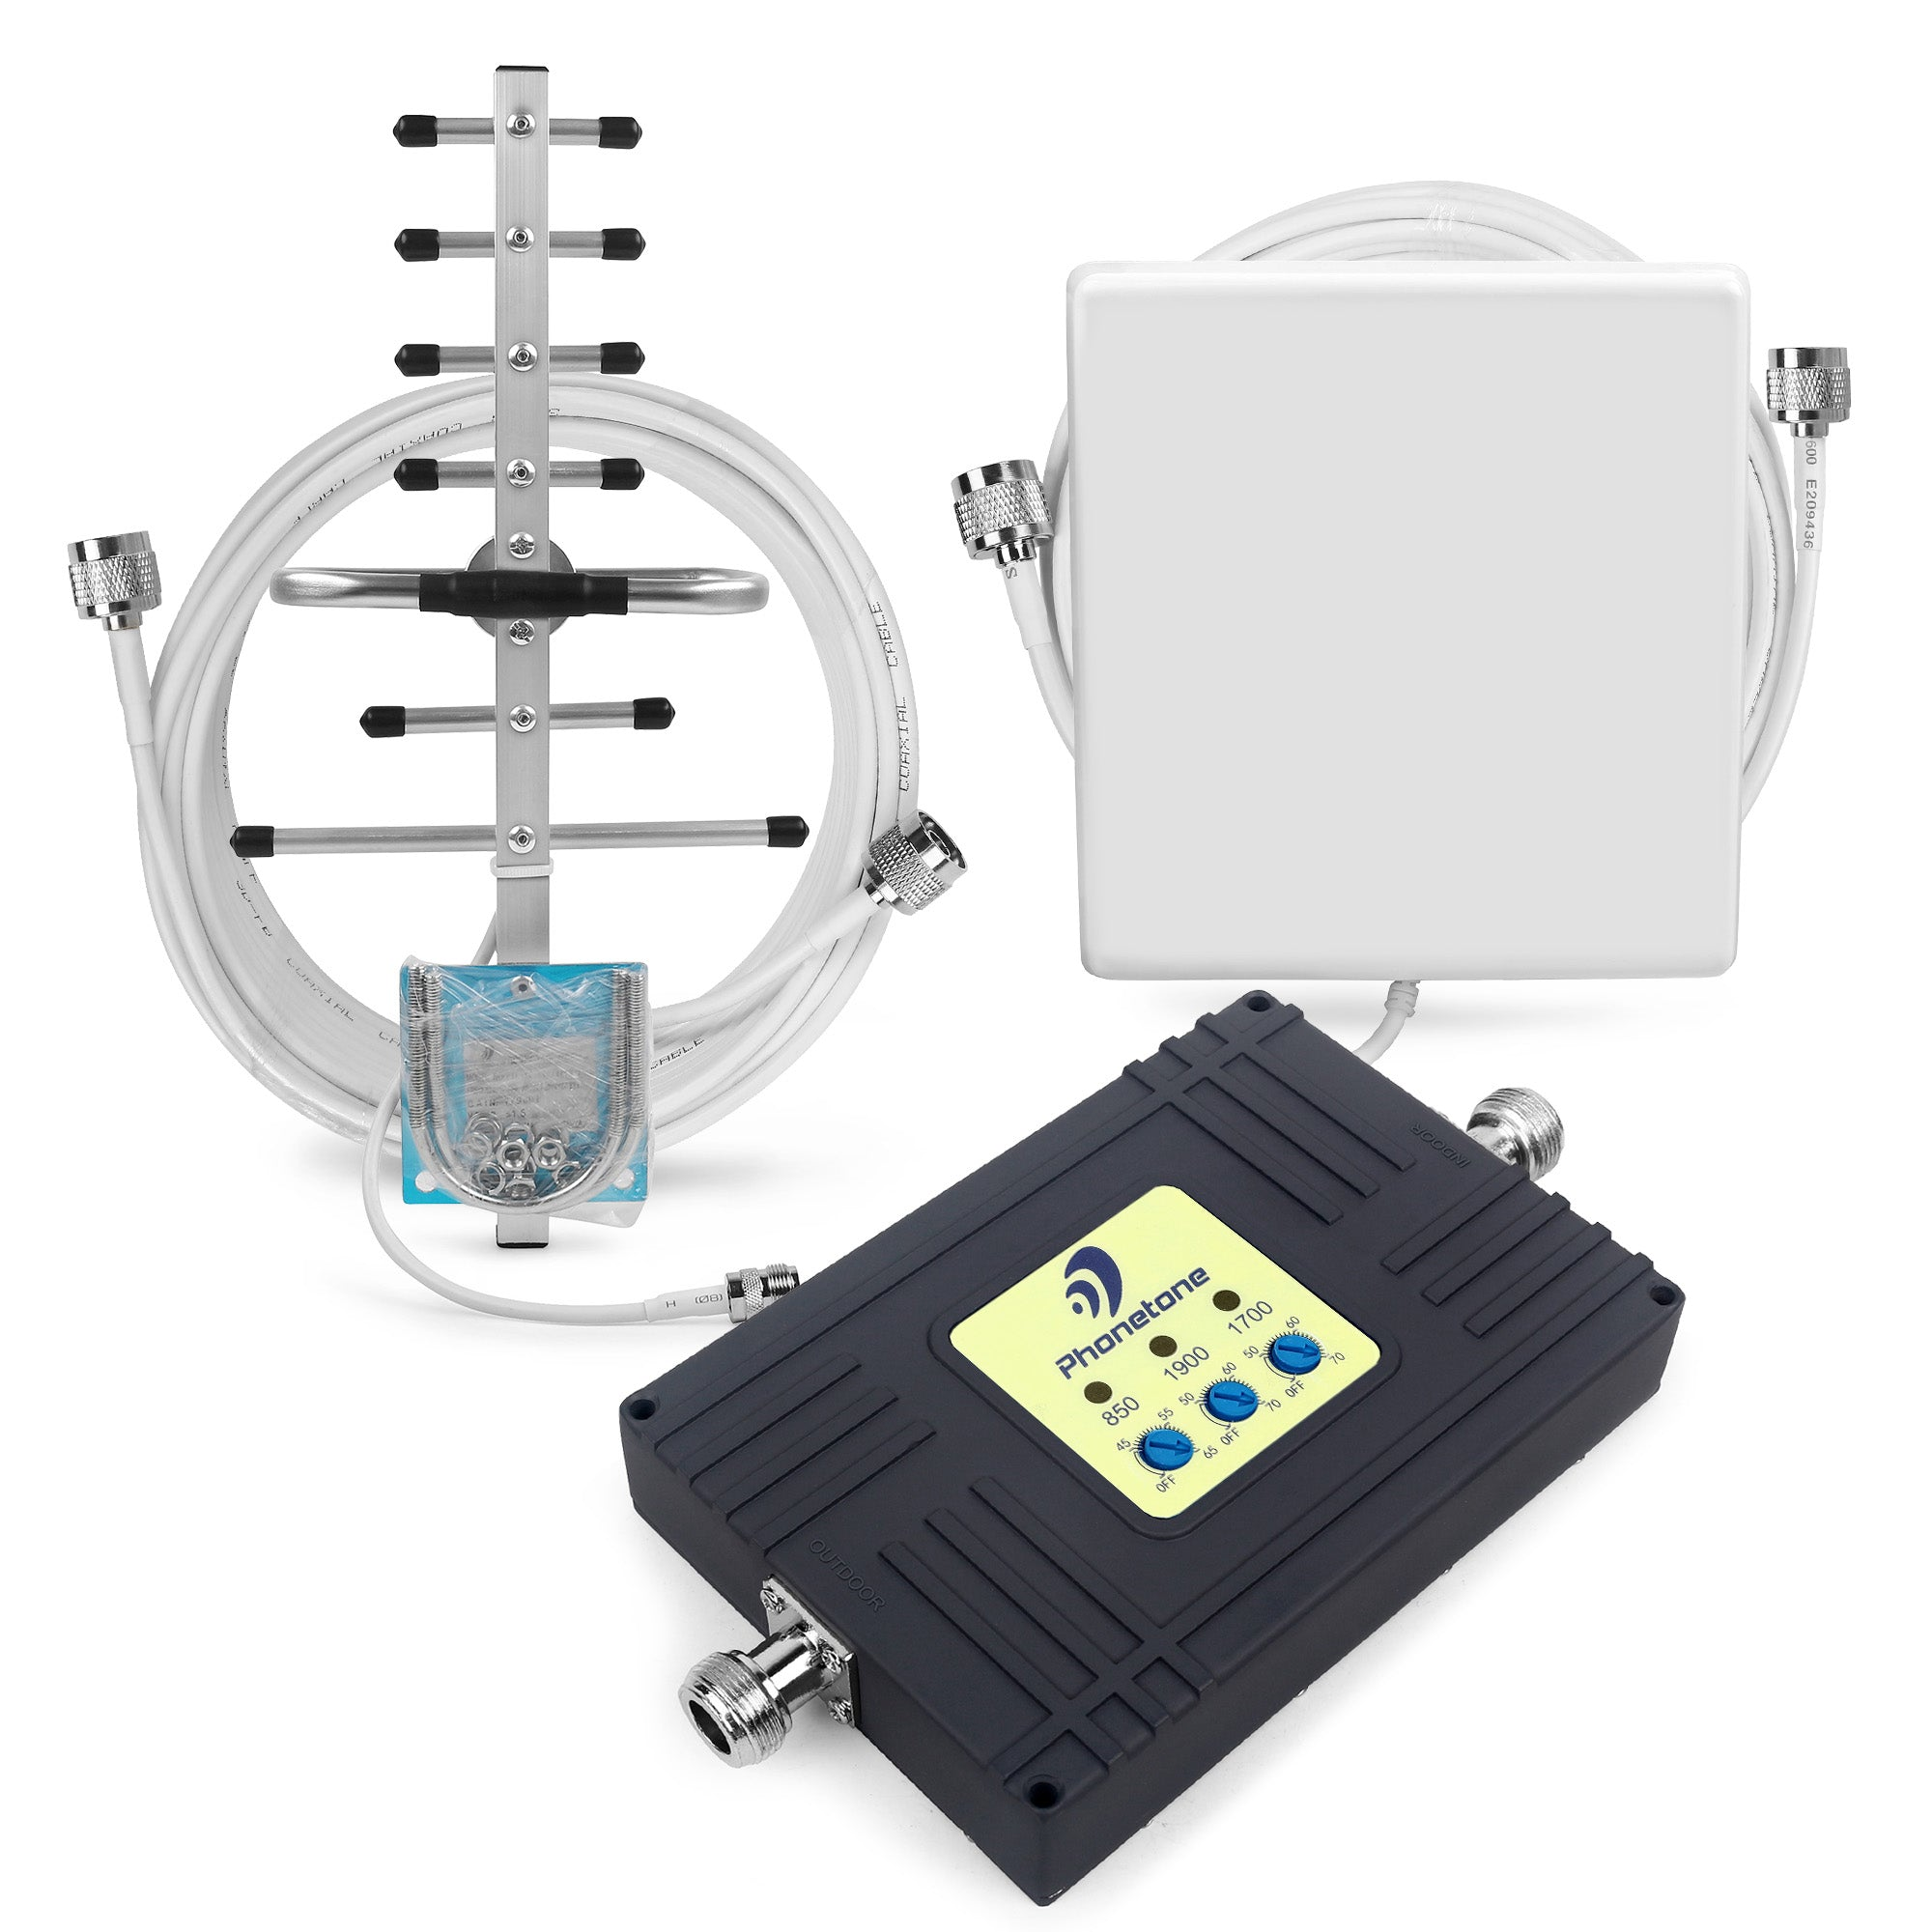 Cell Phone Signal Booster Tri-band 850/1900/1700MHz 70dB With Yagi Antenna and Panel Antenna